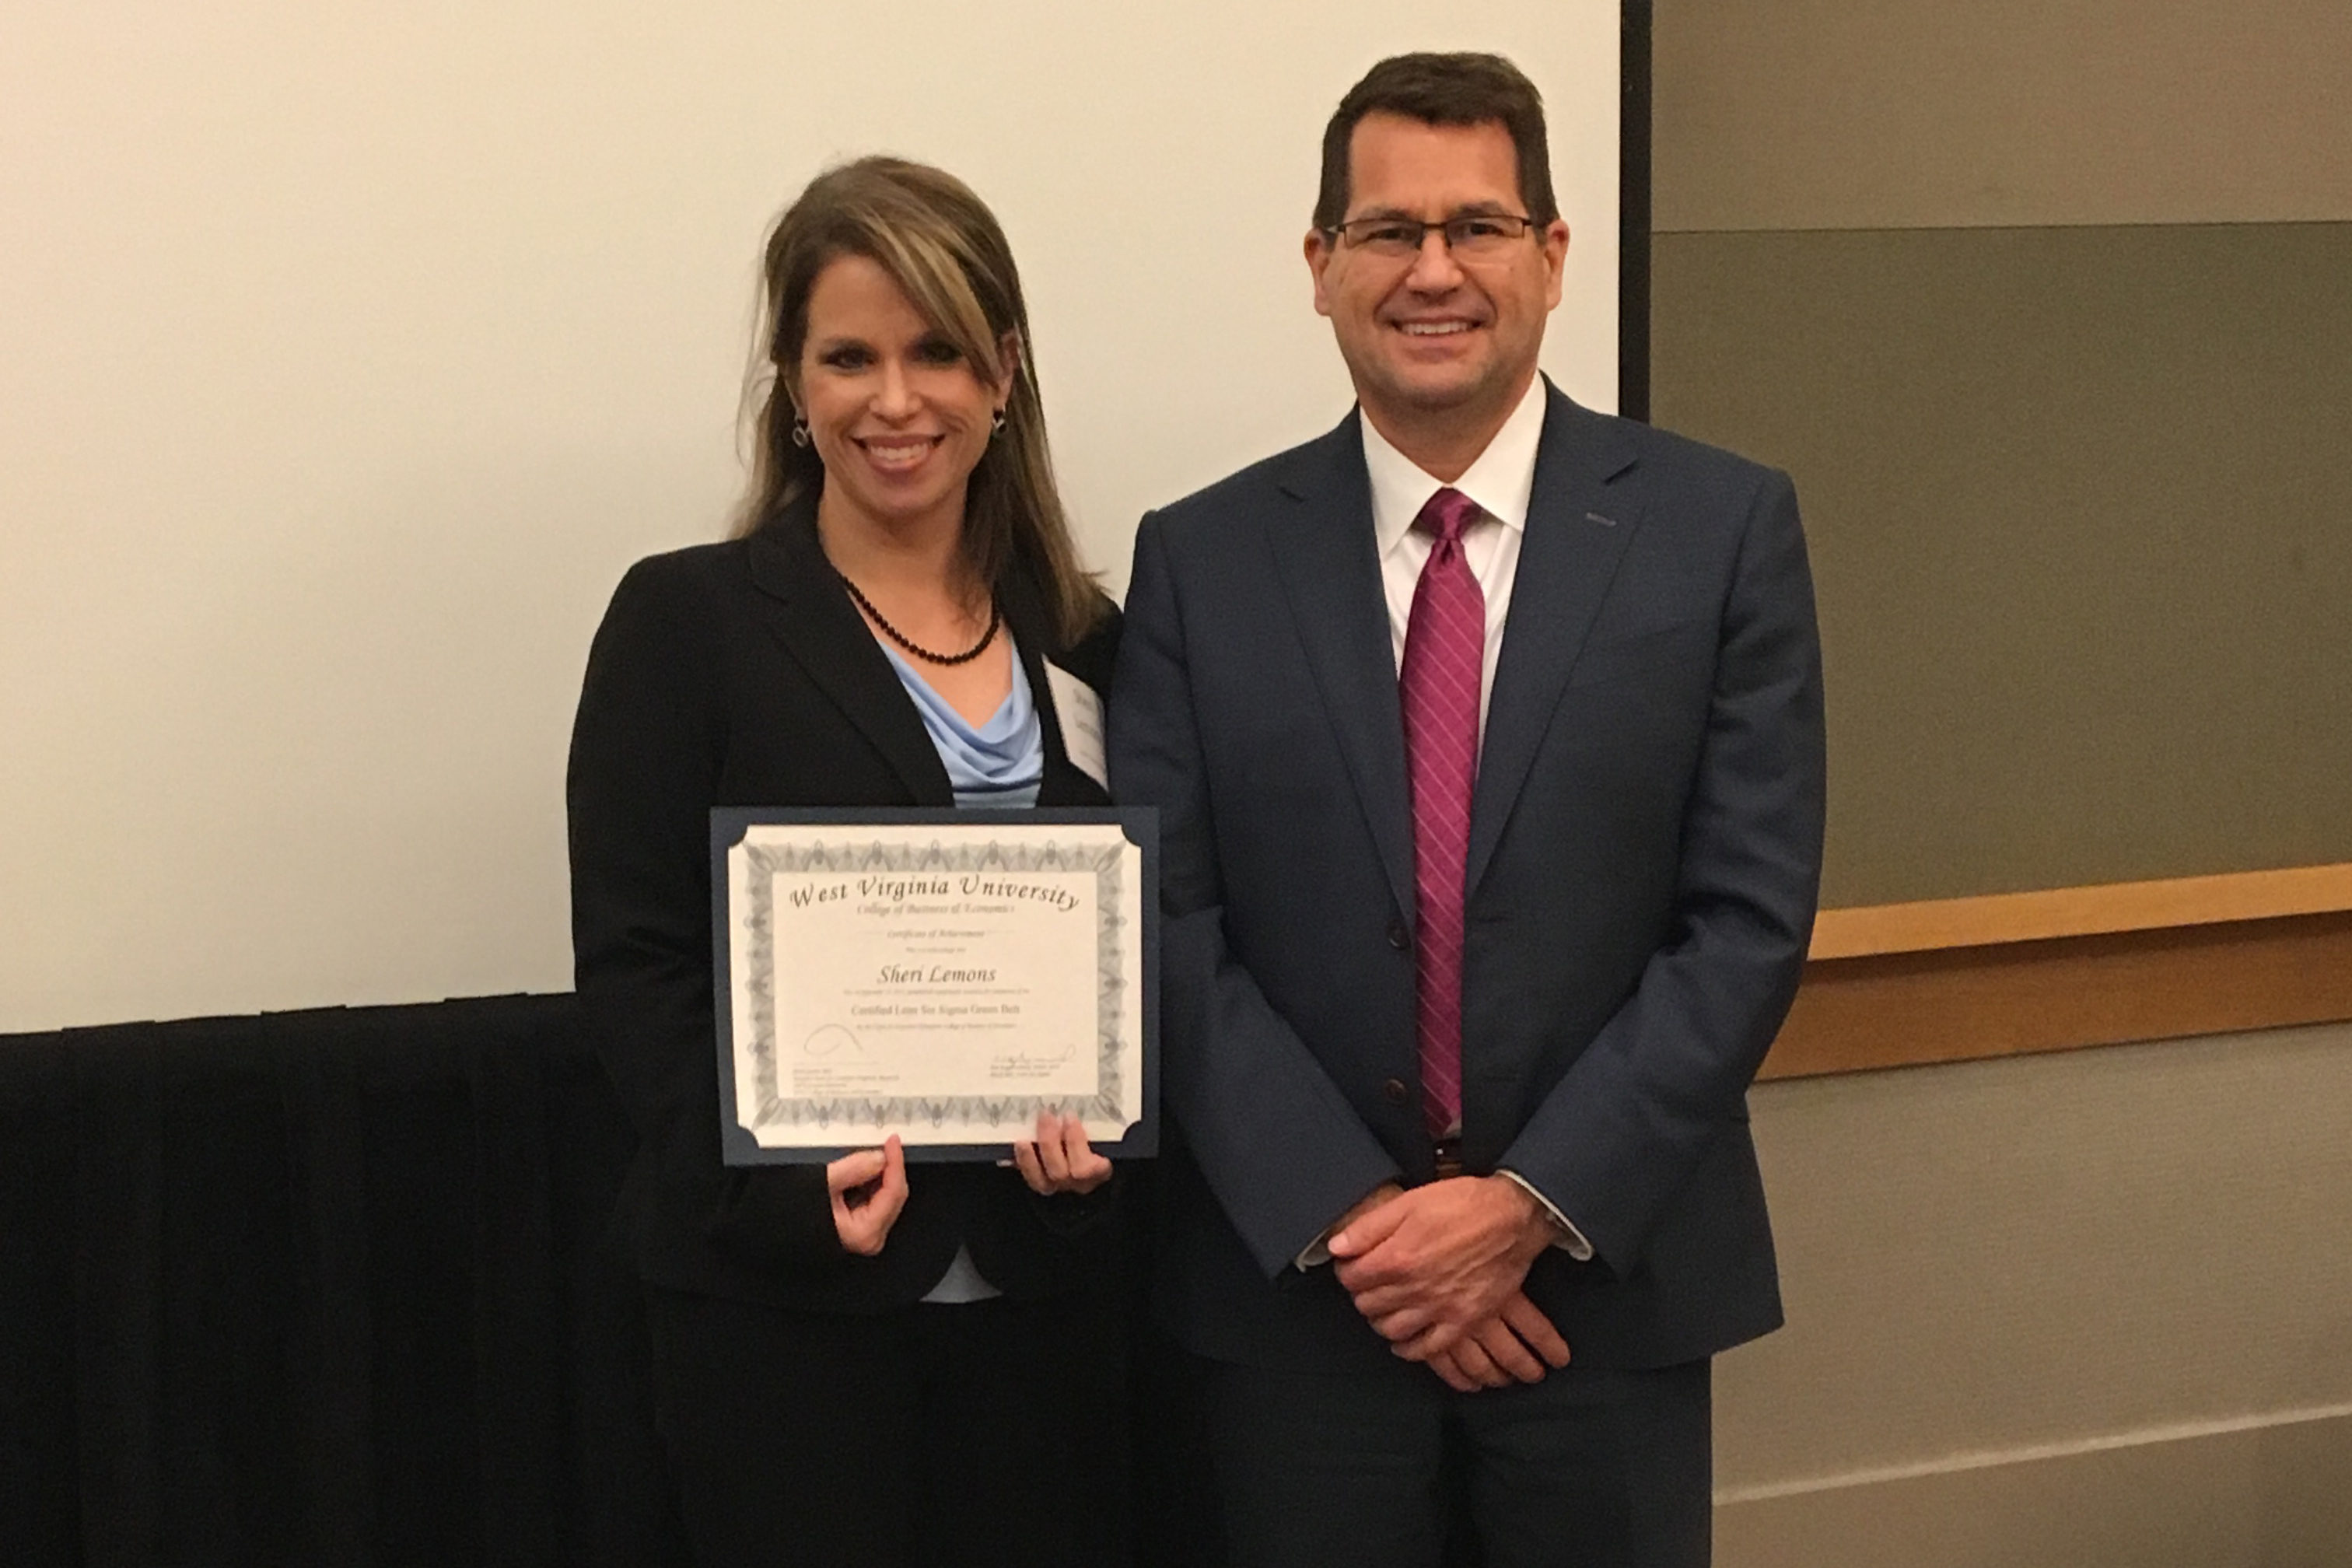 Sheri Lemons shows her certificate from the Lean Six Sigma Green Belt program in the WVU College of Business and Economics.Tim Kupferschmid is the instructor for the LSS course.